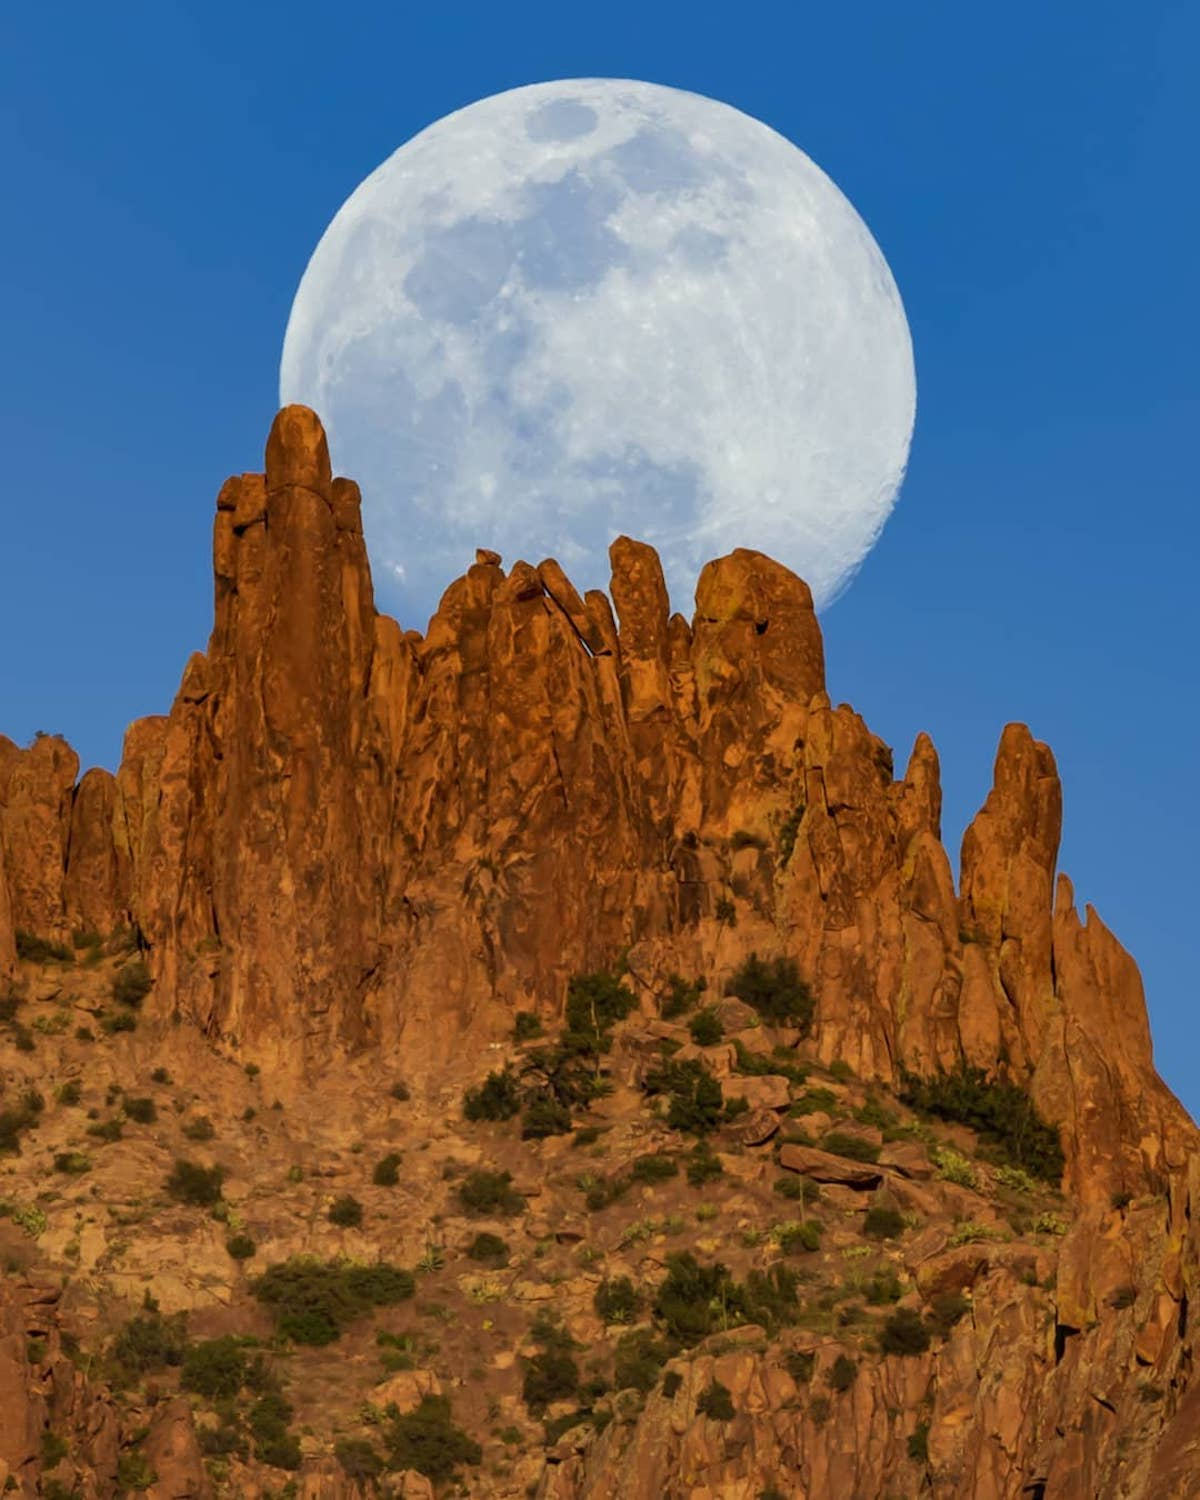 Moon Photo in the Desert